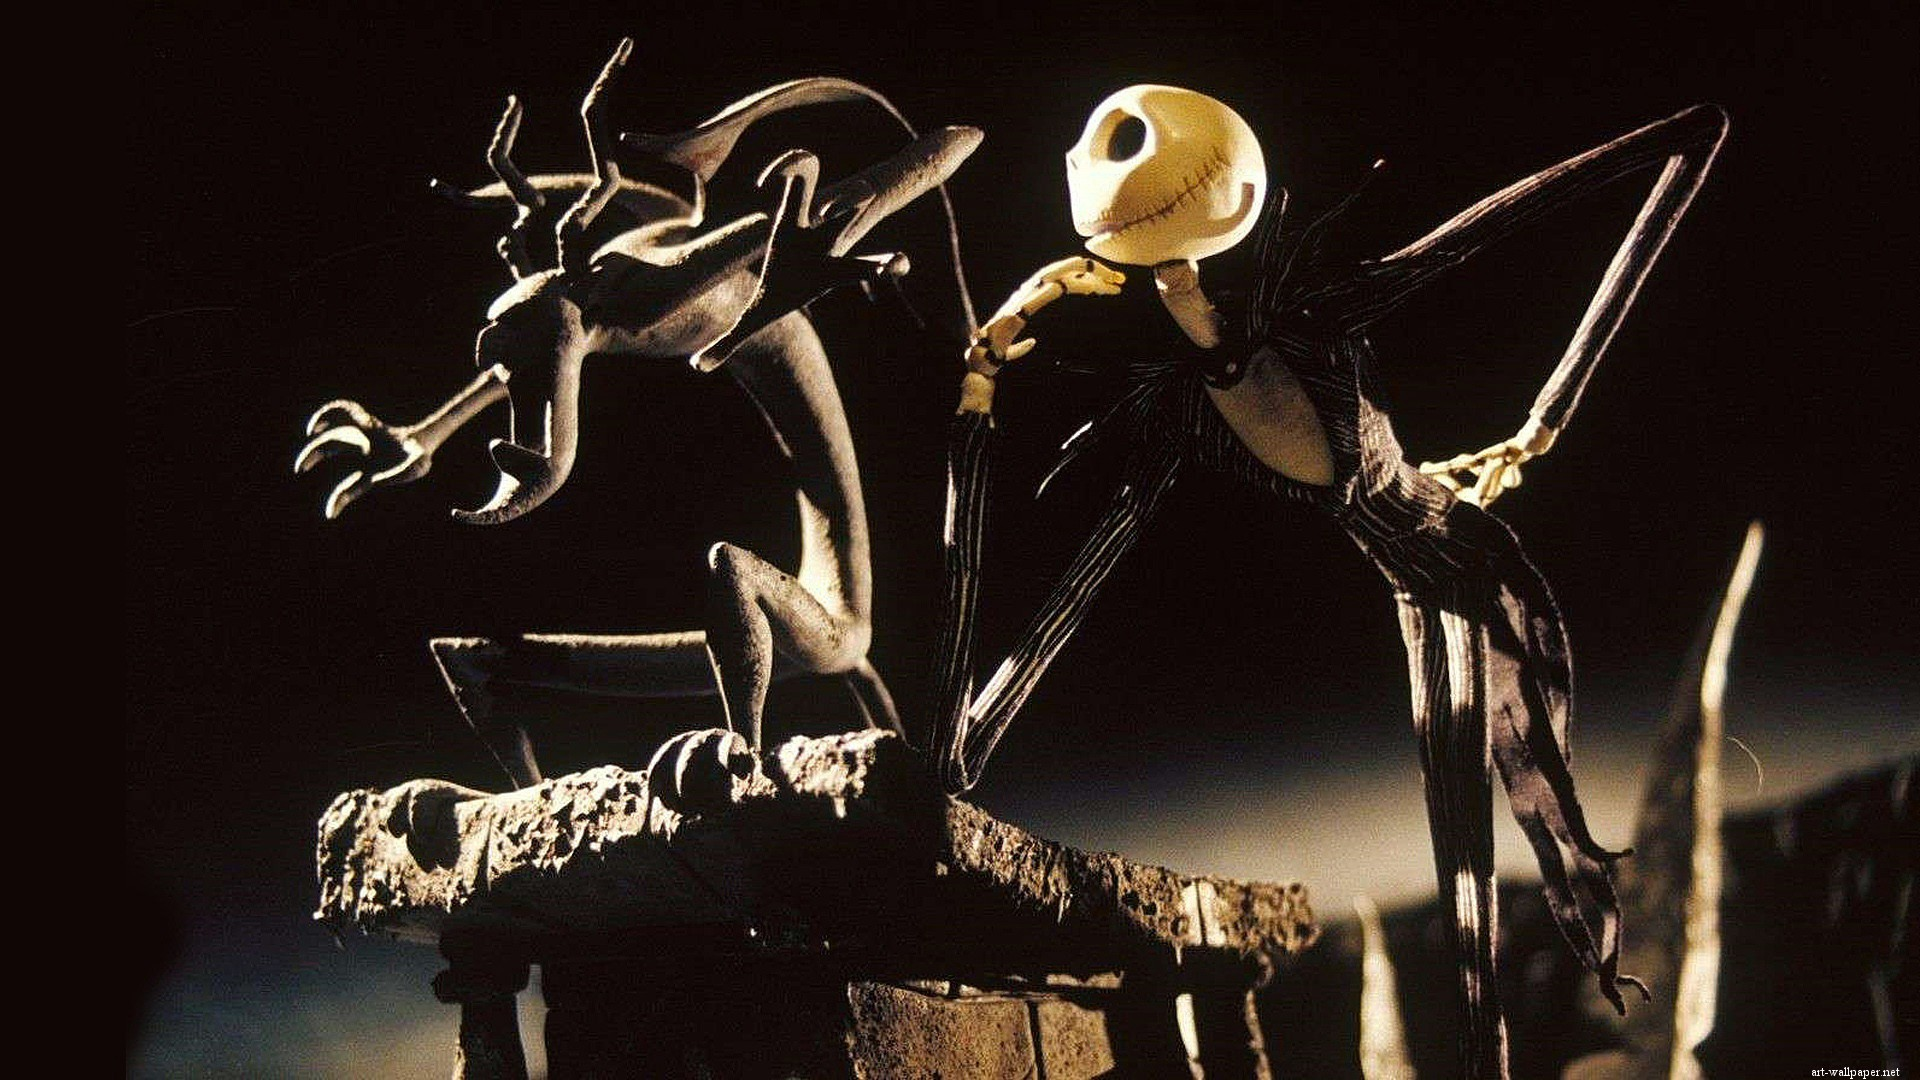 the nightmare before christmas wiki the nightmare before christmas .